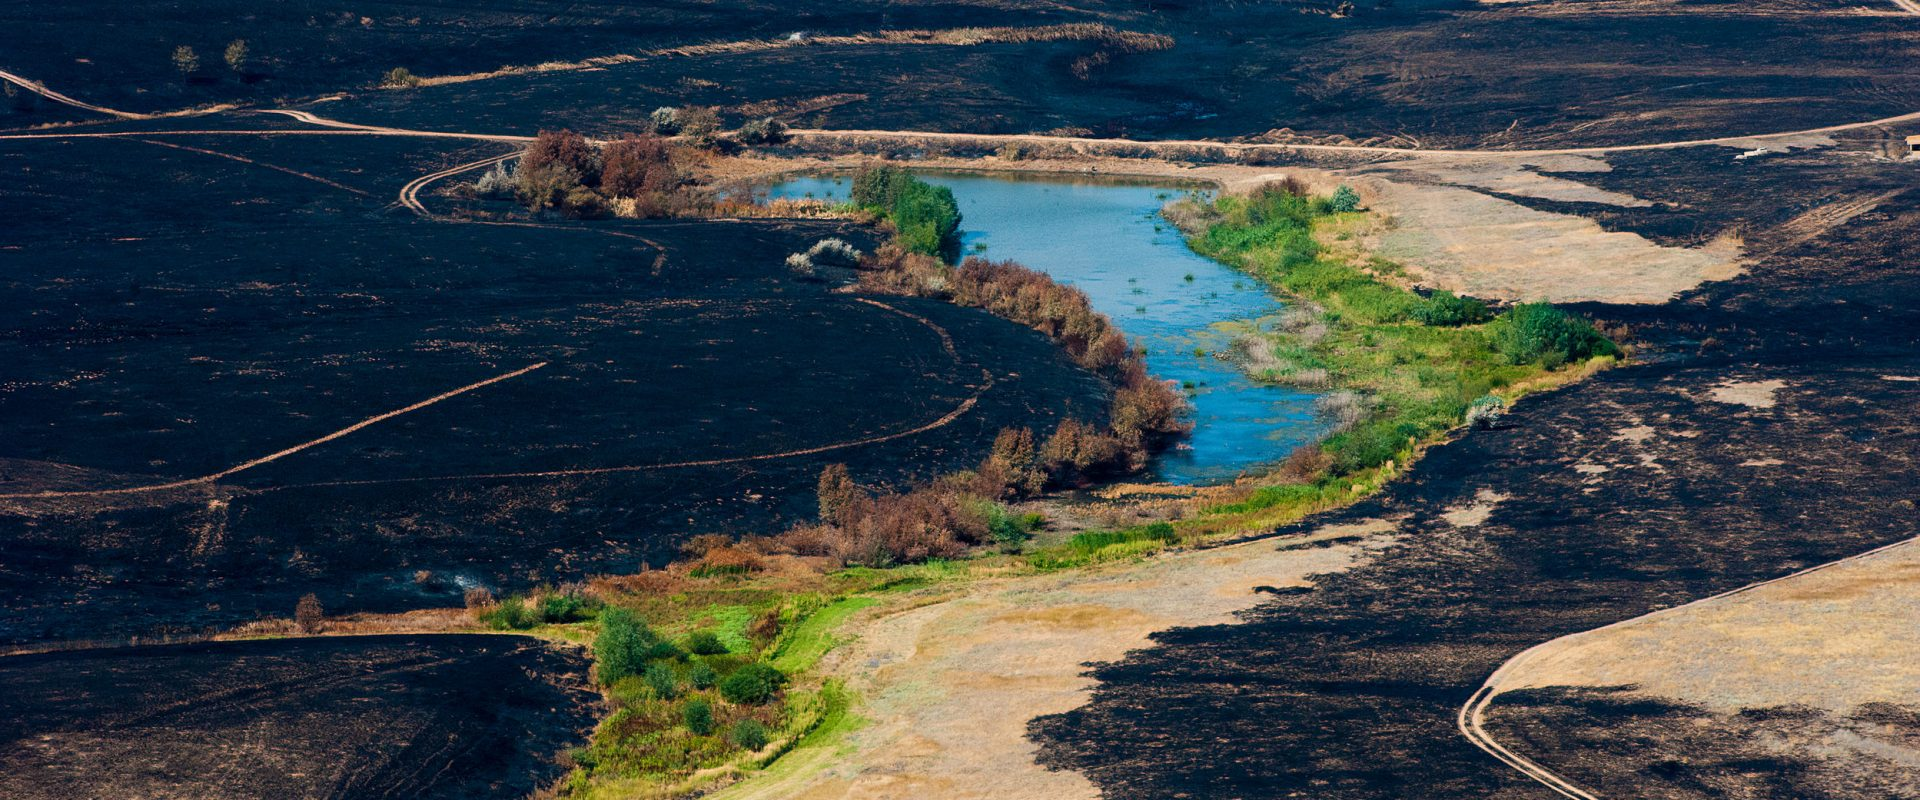 Scorched trees and grass after the fire. Aerial view. Landscape